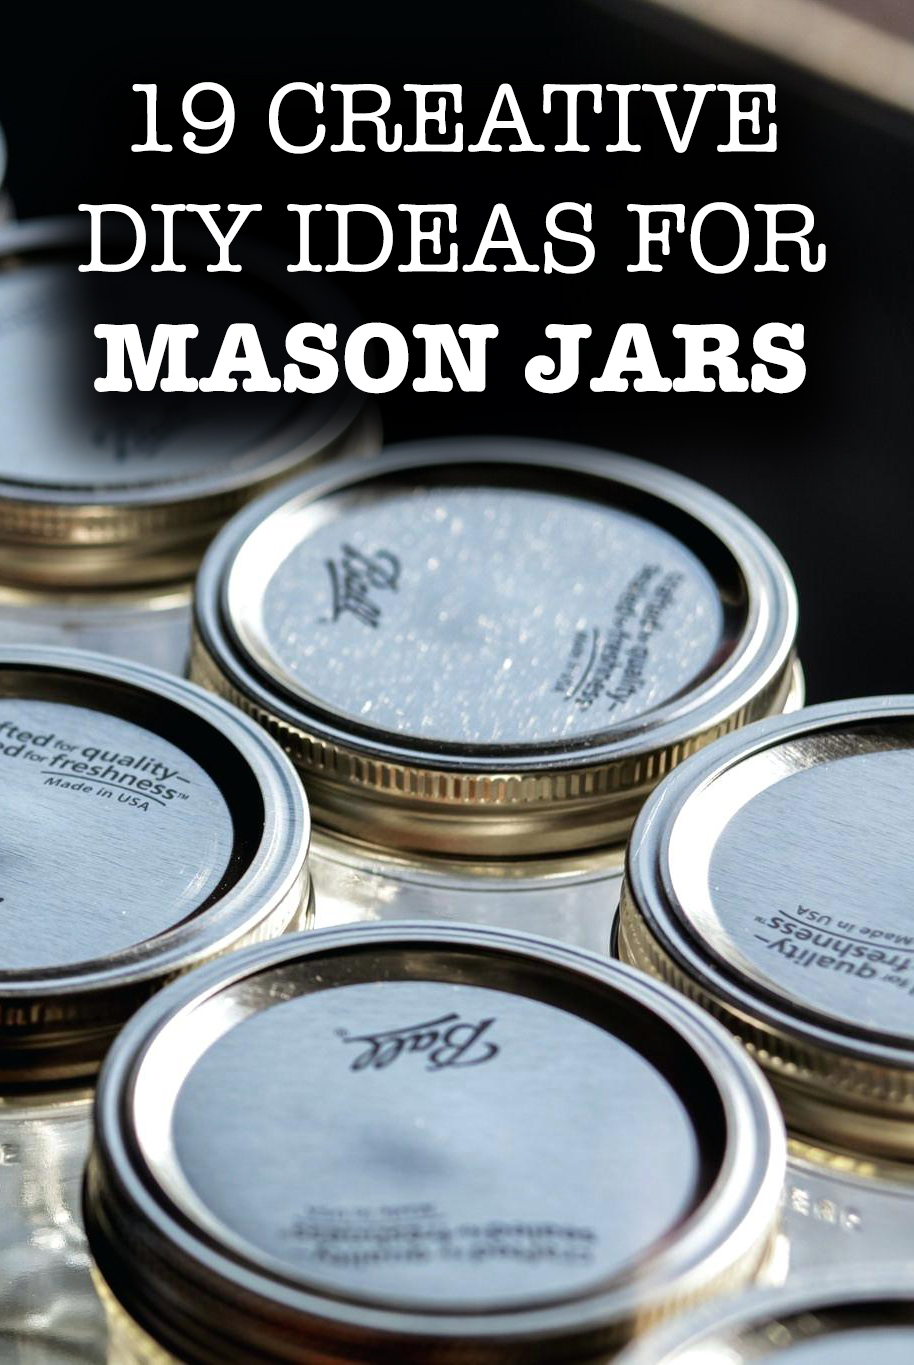 19 Creative DIY Ideas for Mason Jars